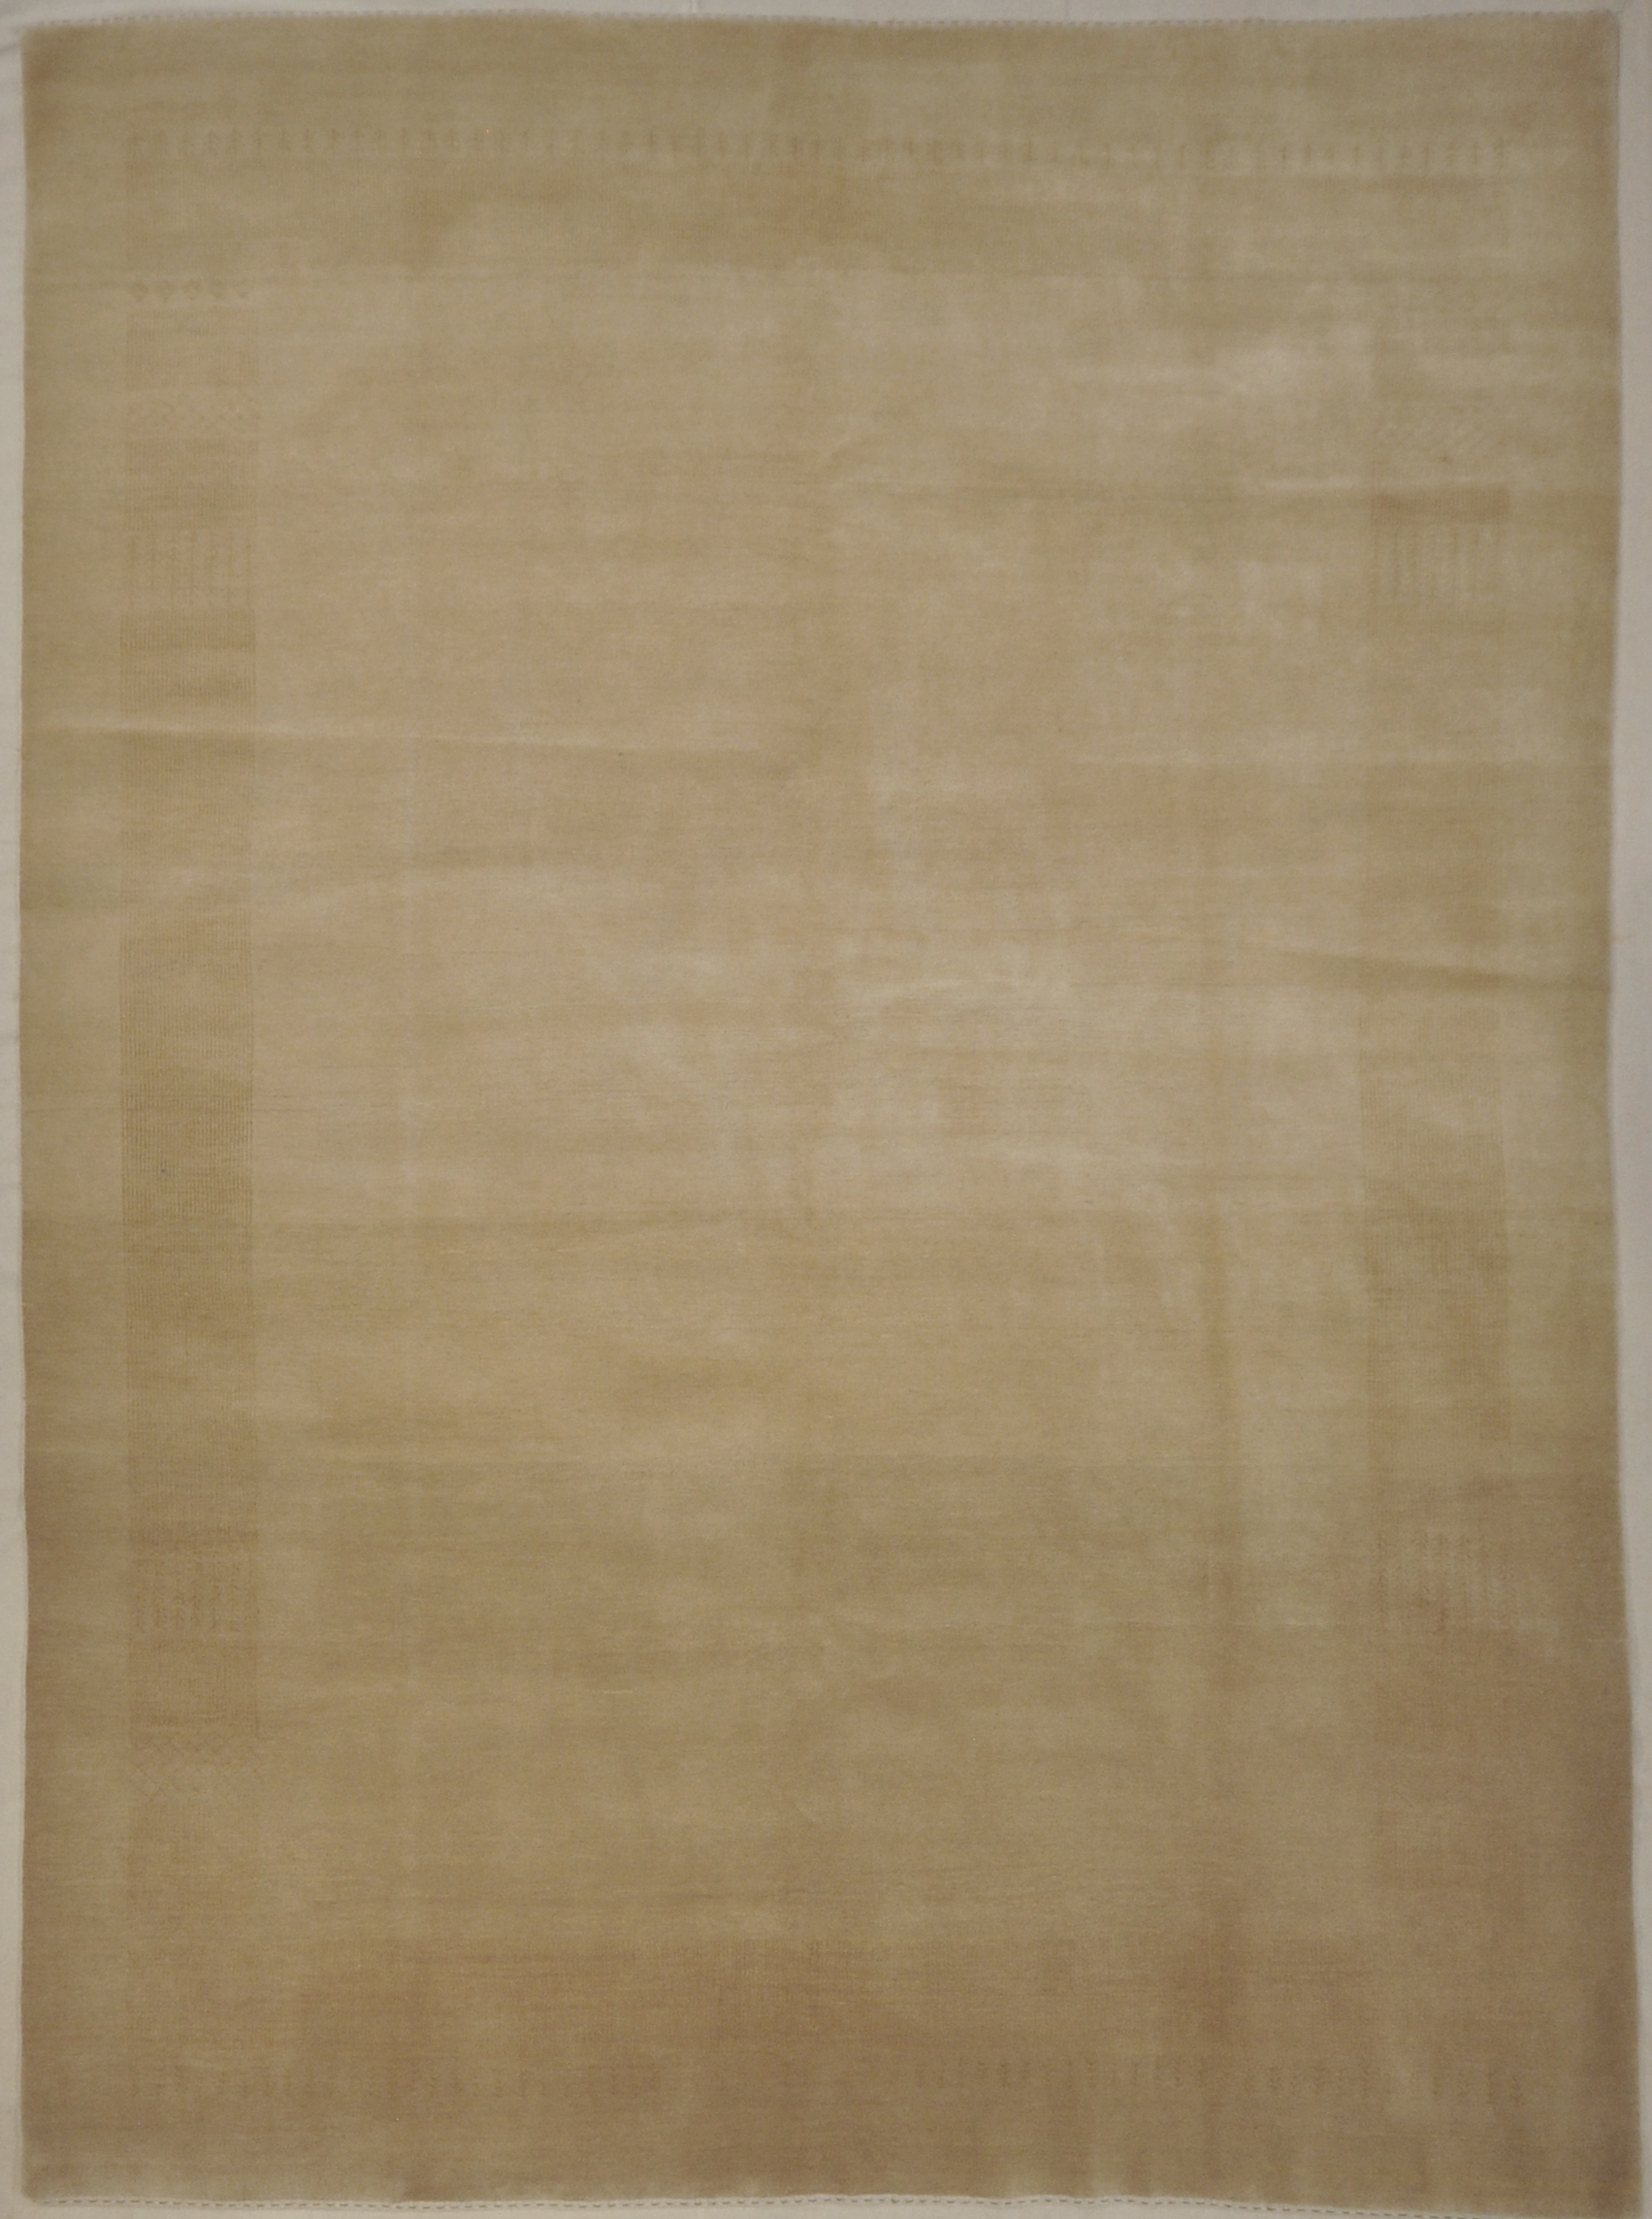 Beige Gabbeh Rug Made in India A piece of genuine authentic woven carpet art sold by Santa Barbara Design Center Rugs and More